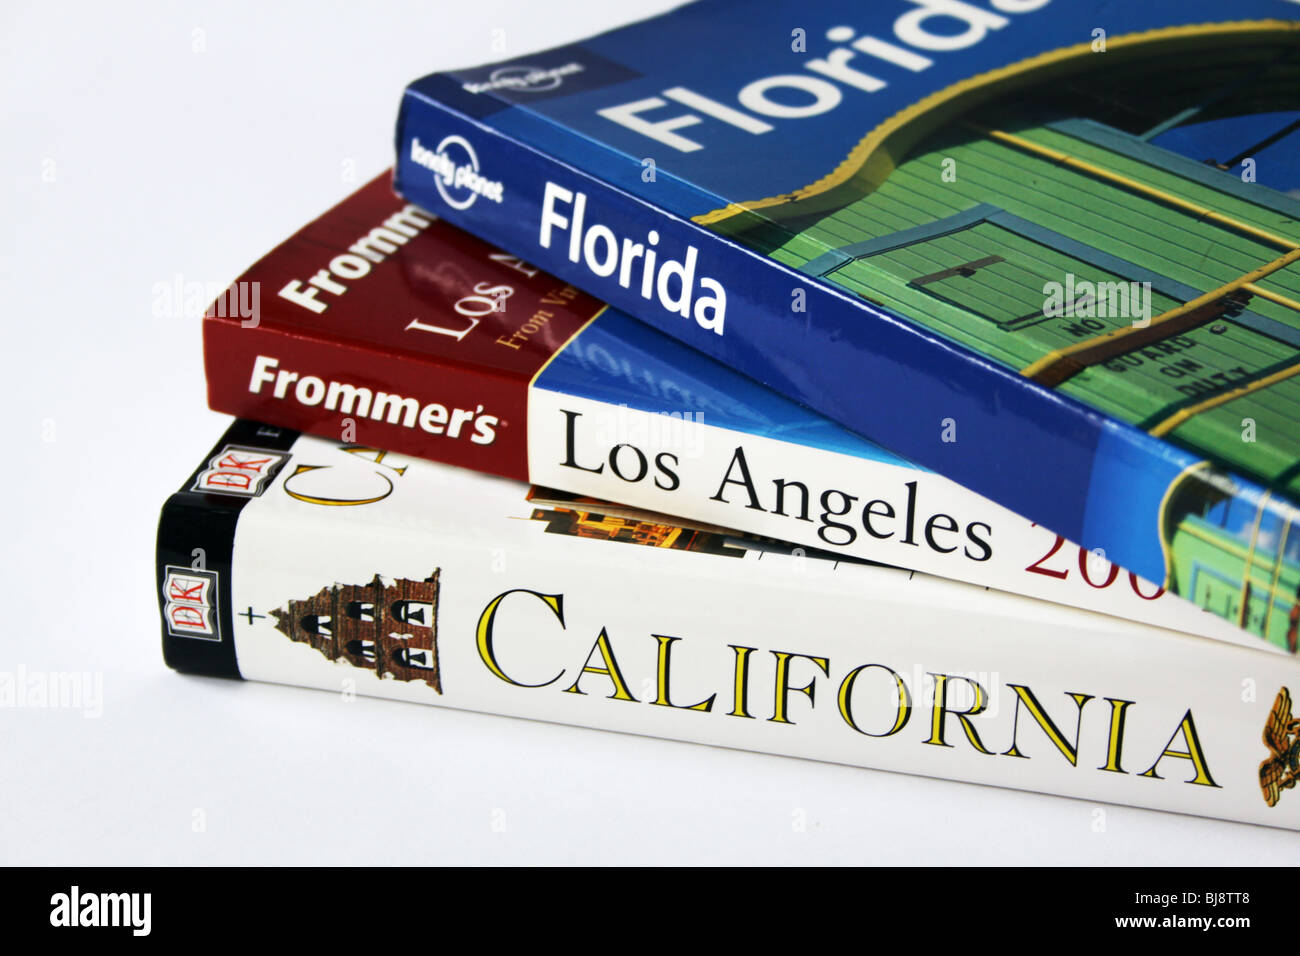 USA Guide books in a stack - Stock Image